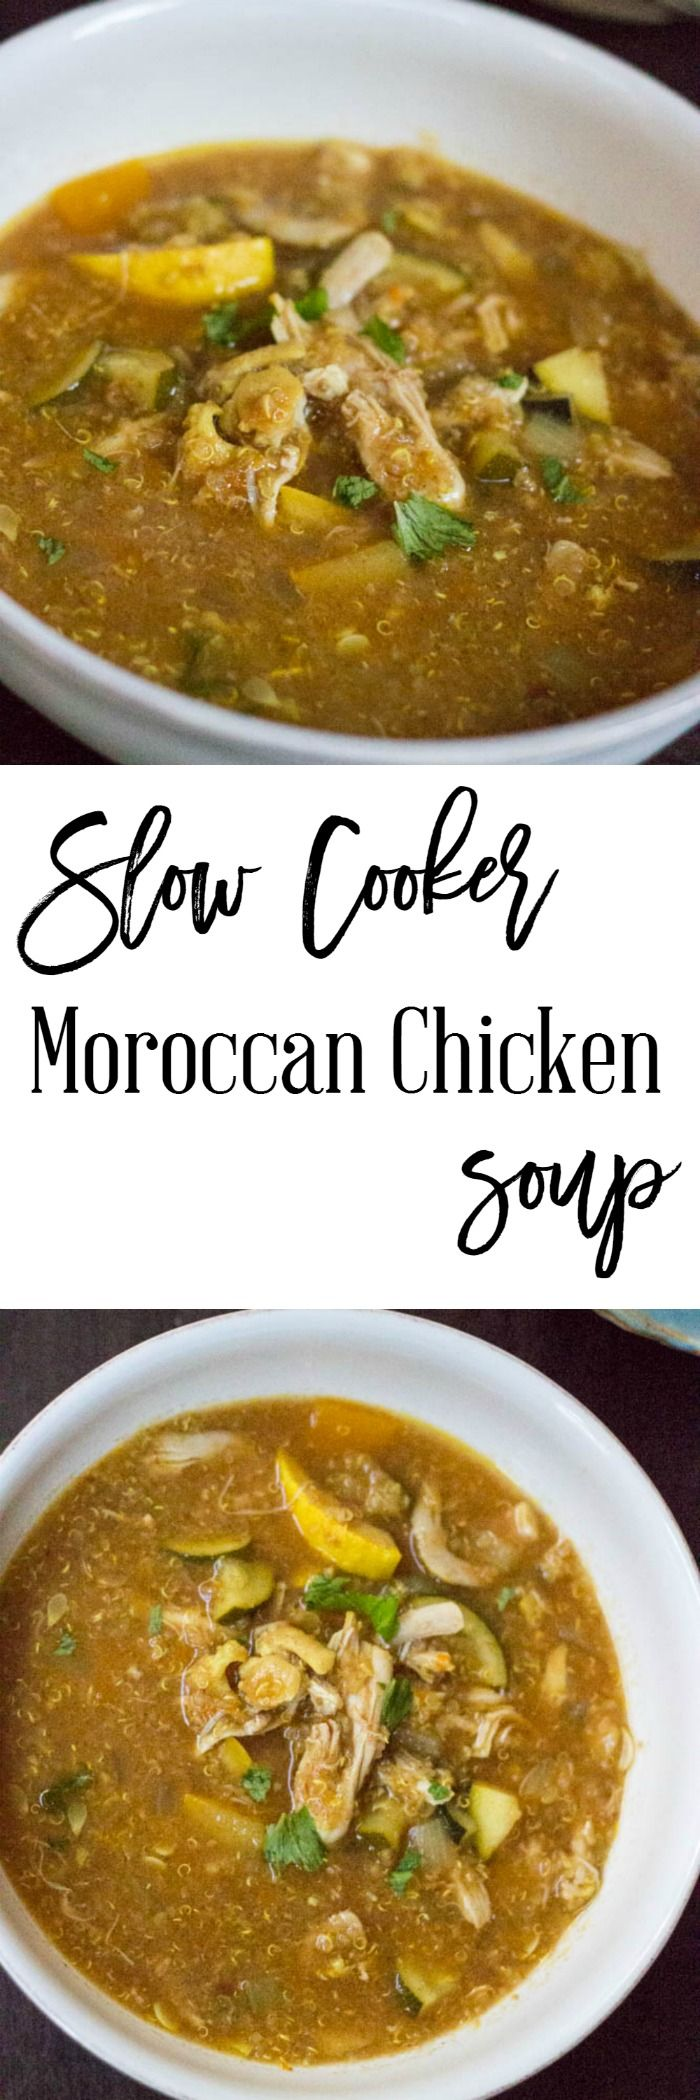 Slow Cooker Moroccan Chicken Soup When You Don T Have A